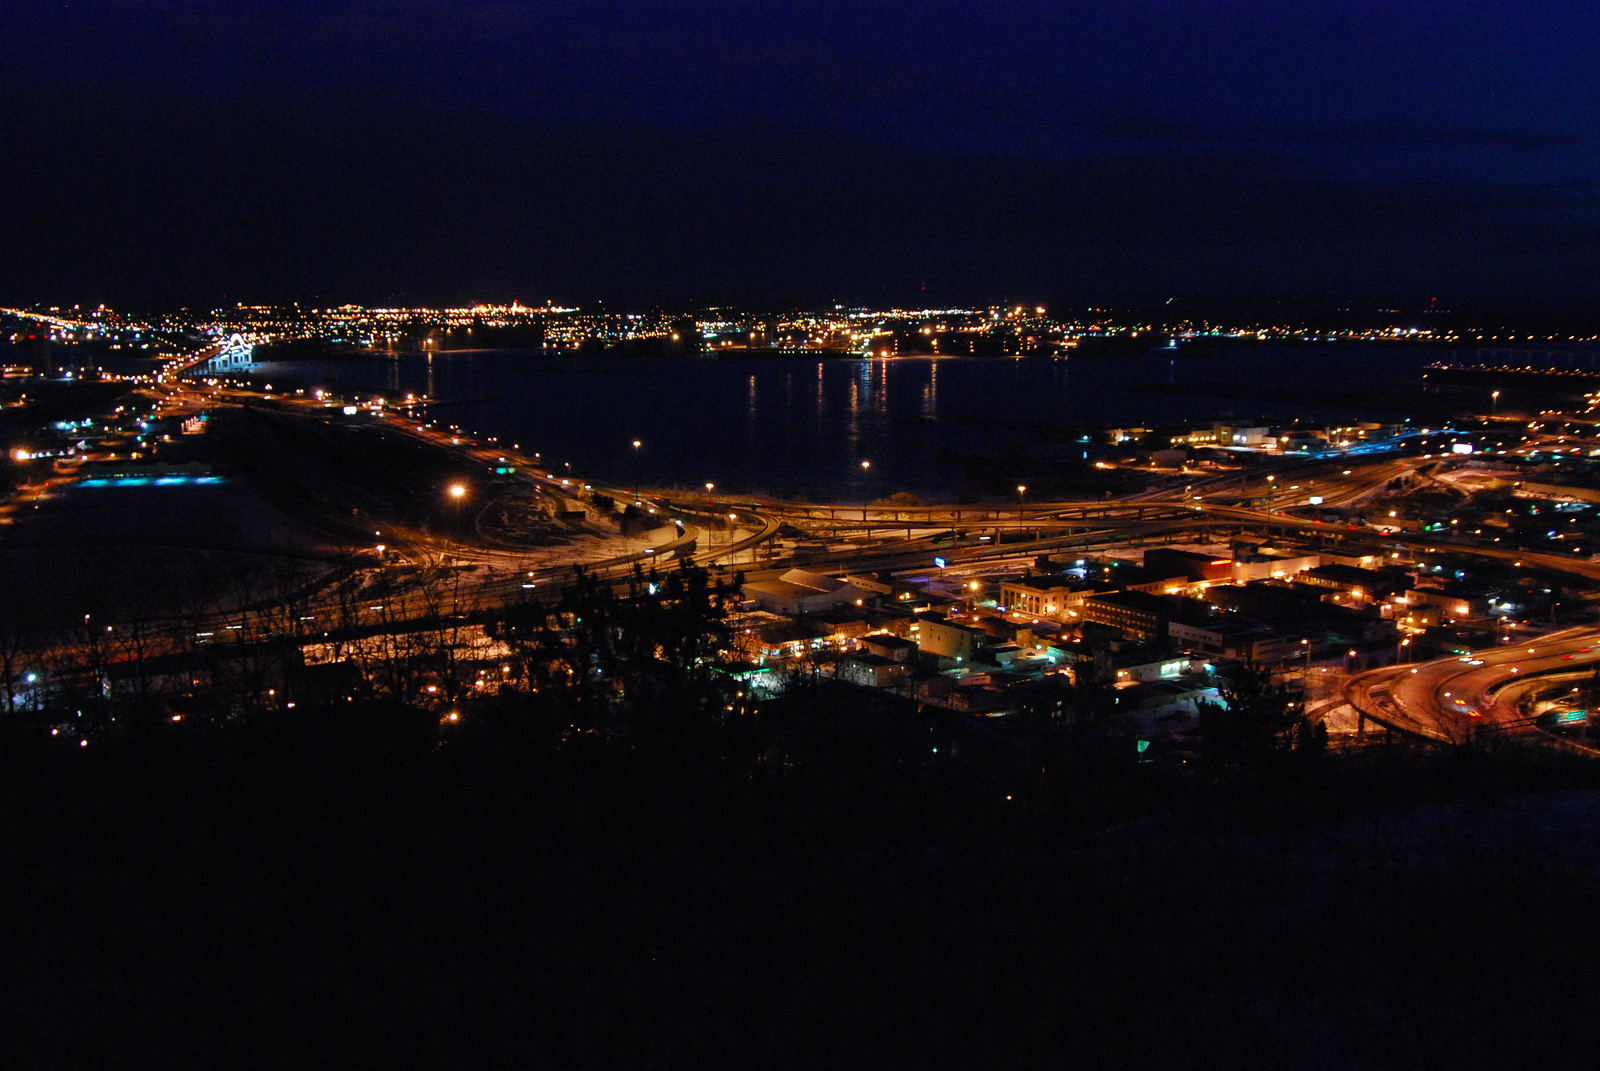 Duluth, Minnesota at night.